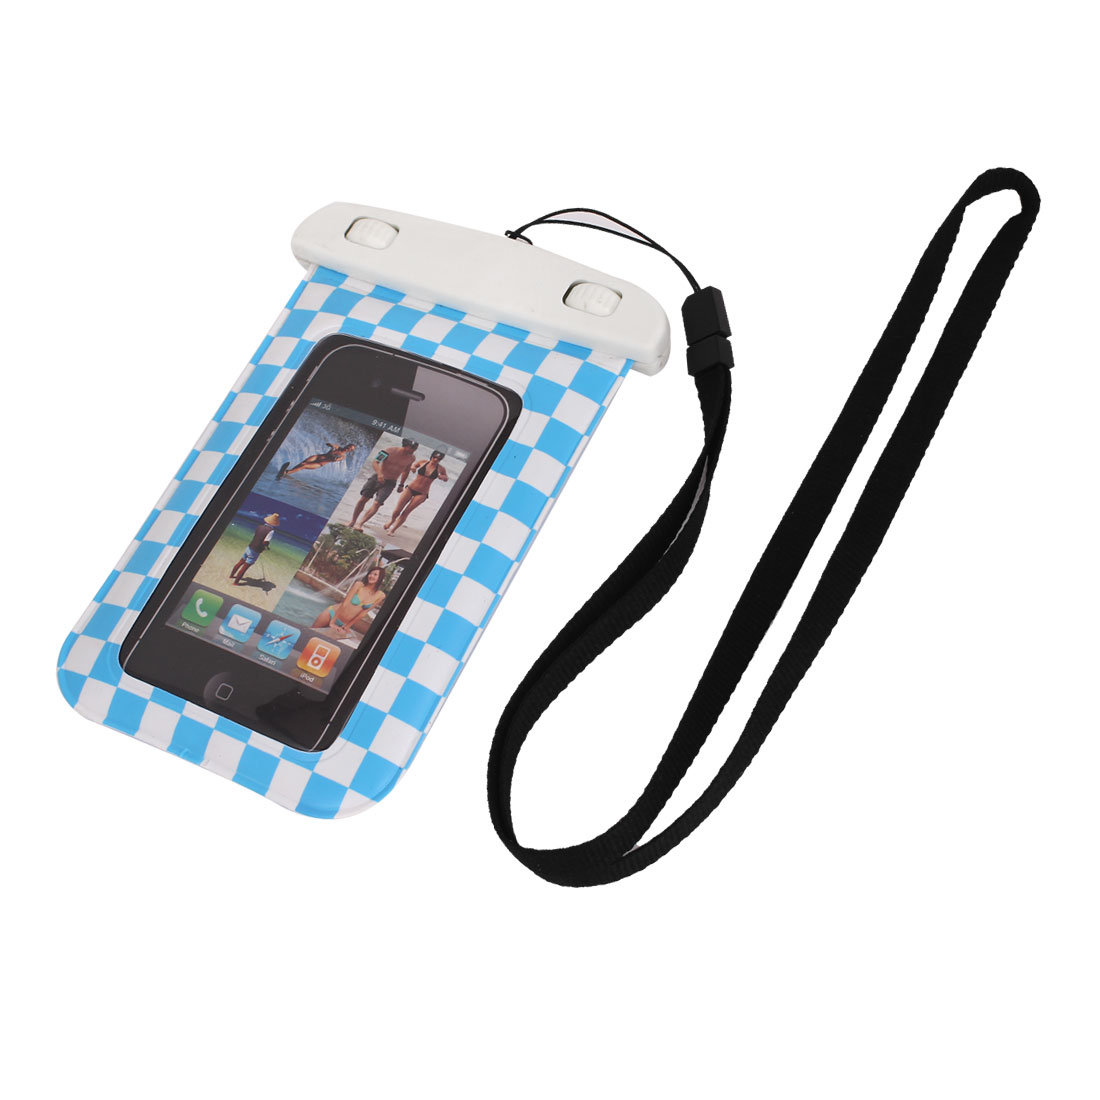 "Grid Pattern Waterproof Case Dry Bag Cover Pouch Holder Blue for 4"" Cell Phone"